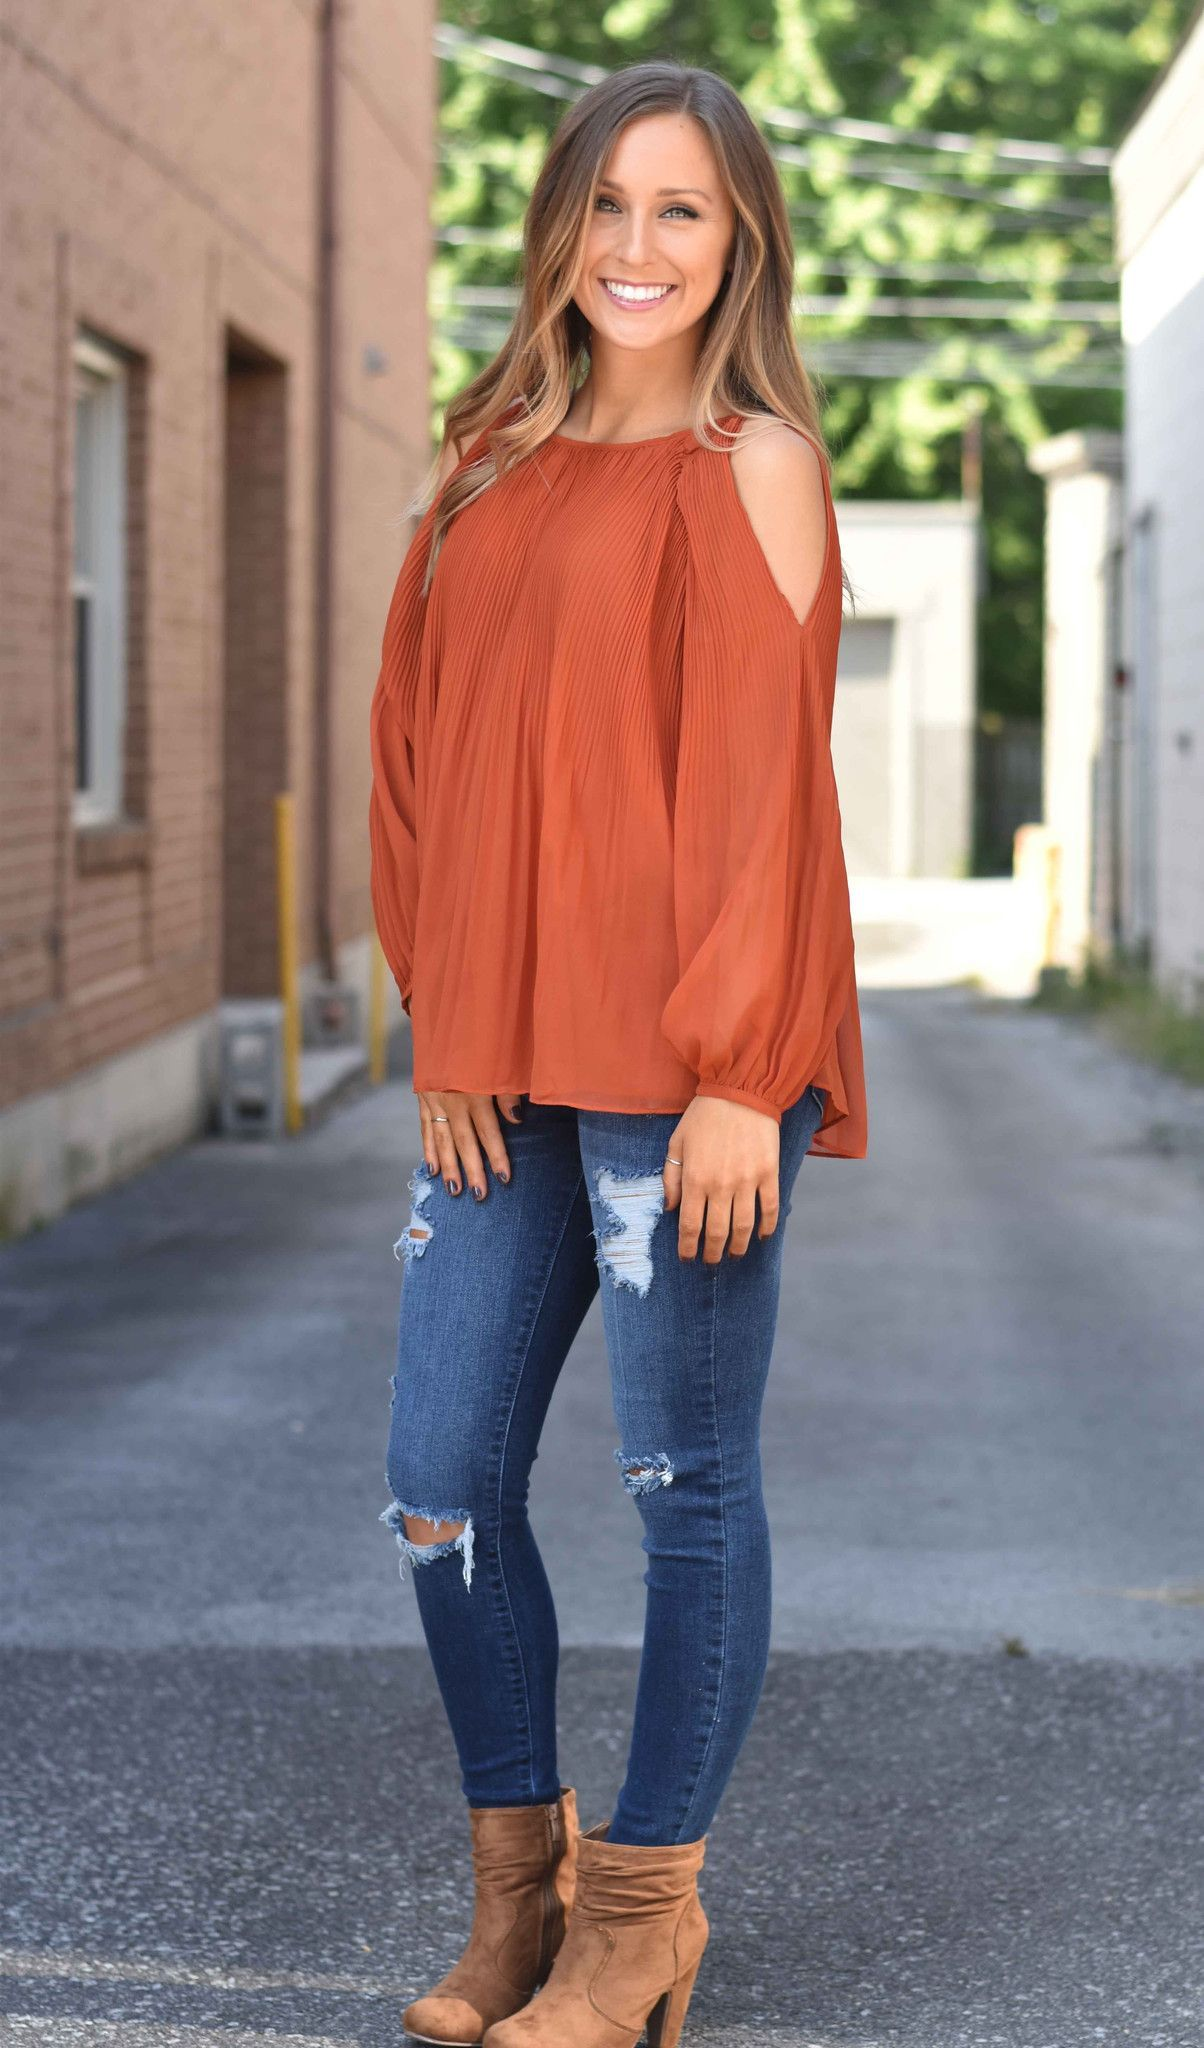 go all out in this rust cold shoulder top! the perfect color and